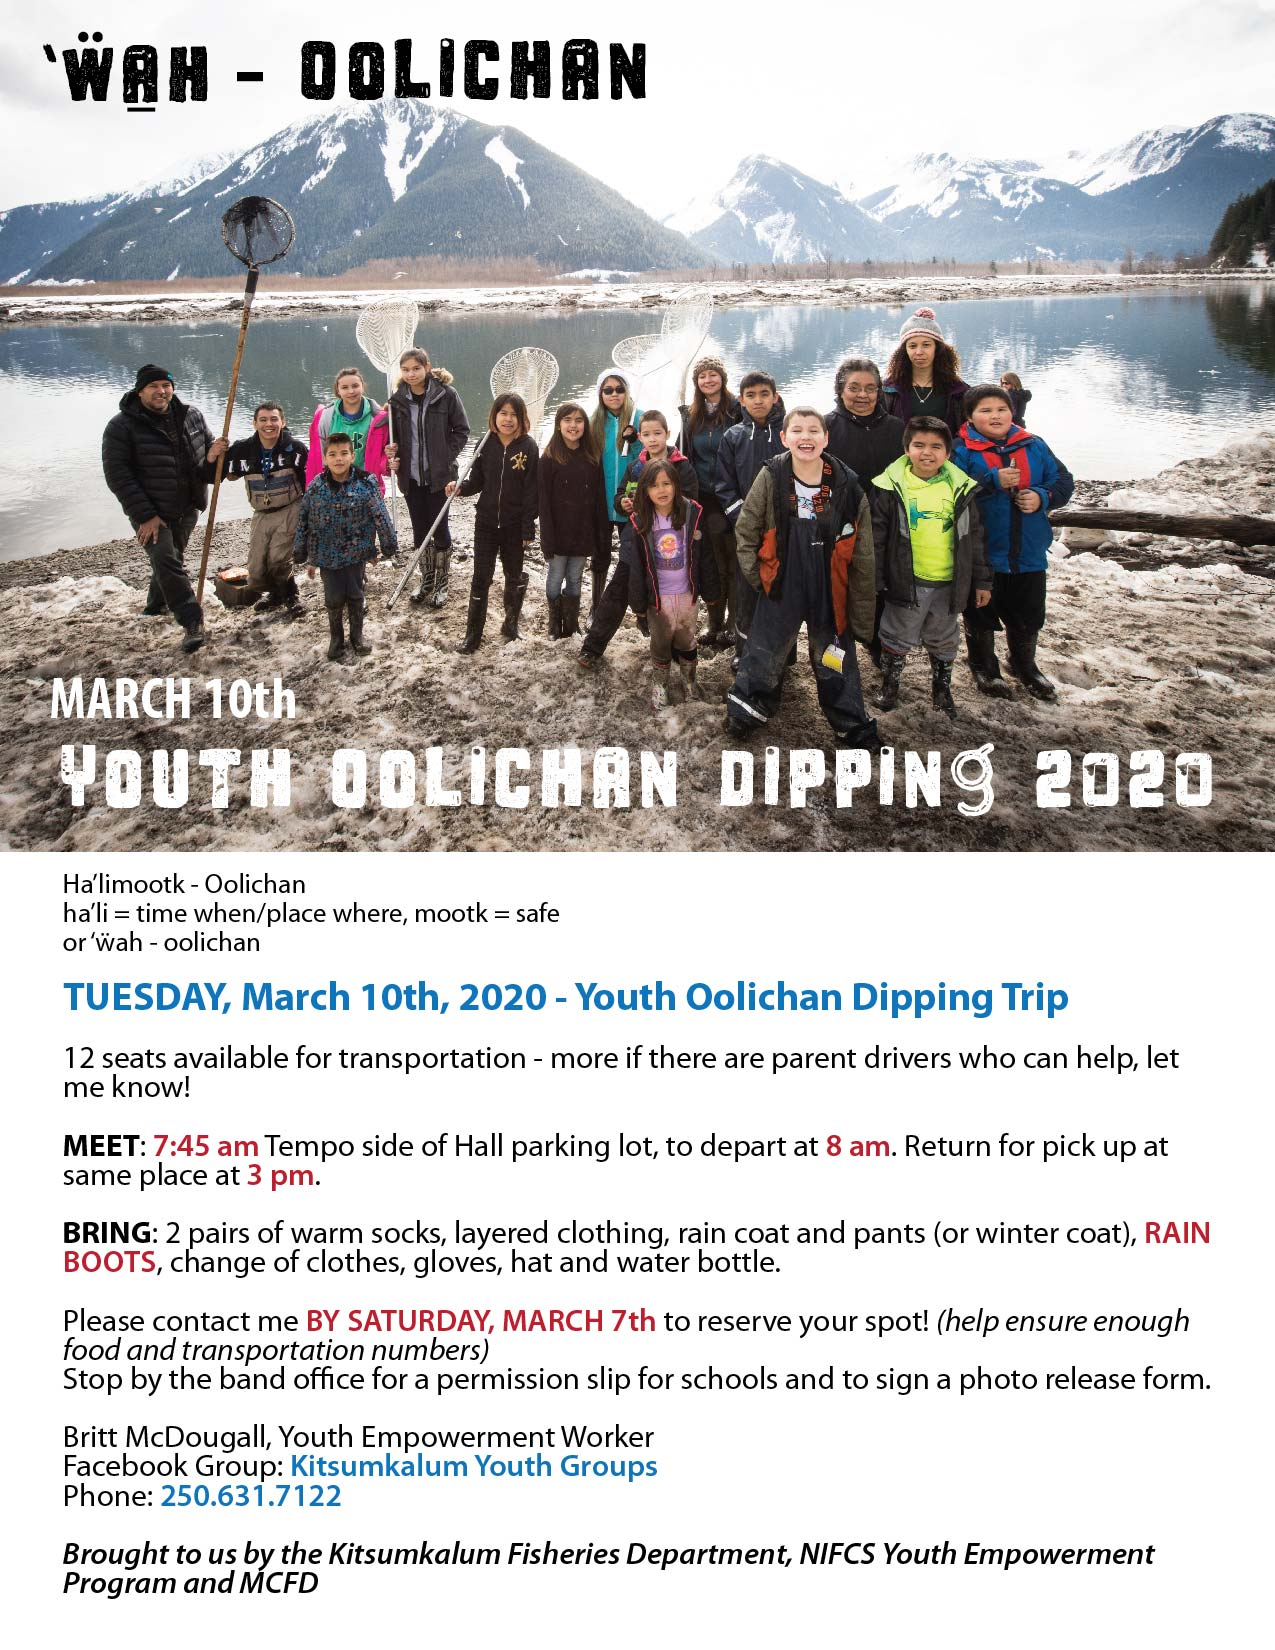 Youth Oolichan Dipping March 10th 2020